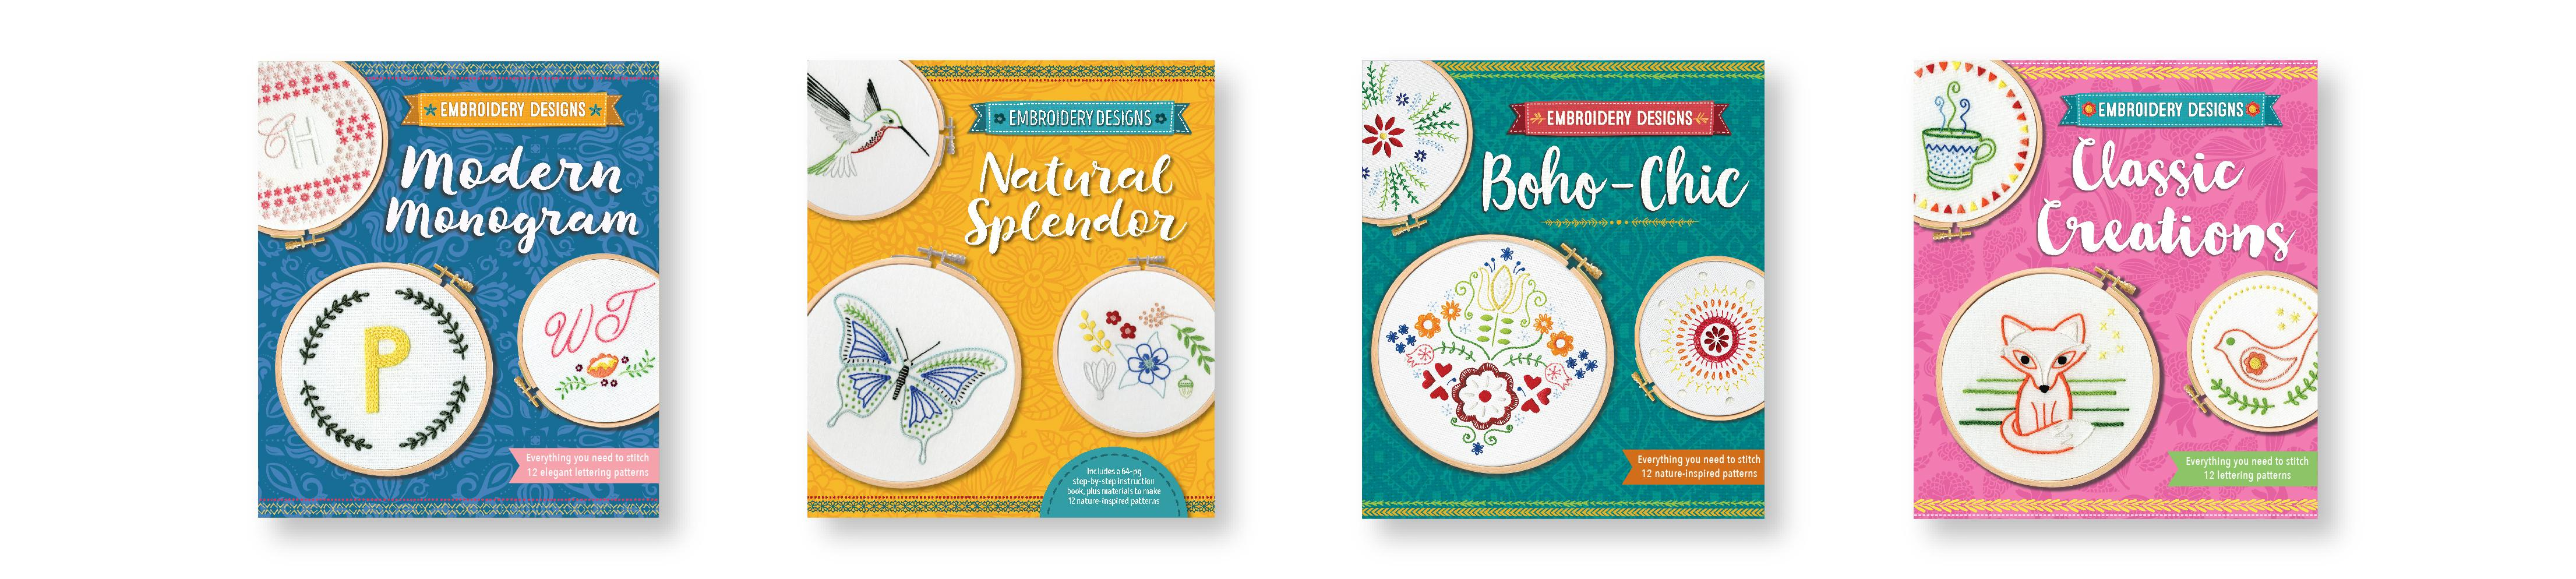 Bohemian Embroidery Patterns Embroidery Designs Boho Chic Everything You Need To Stitch 12